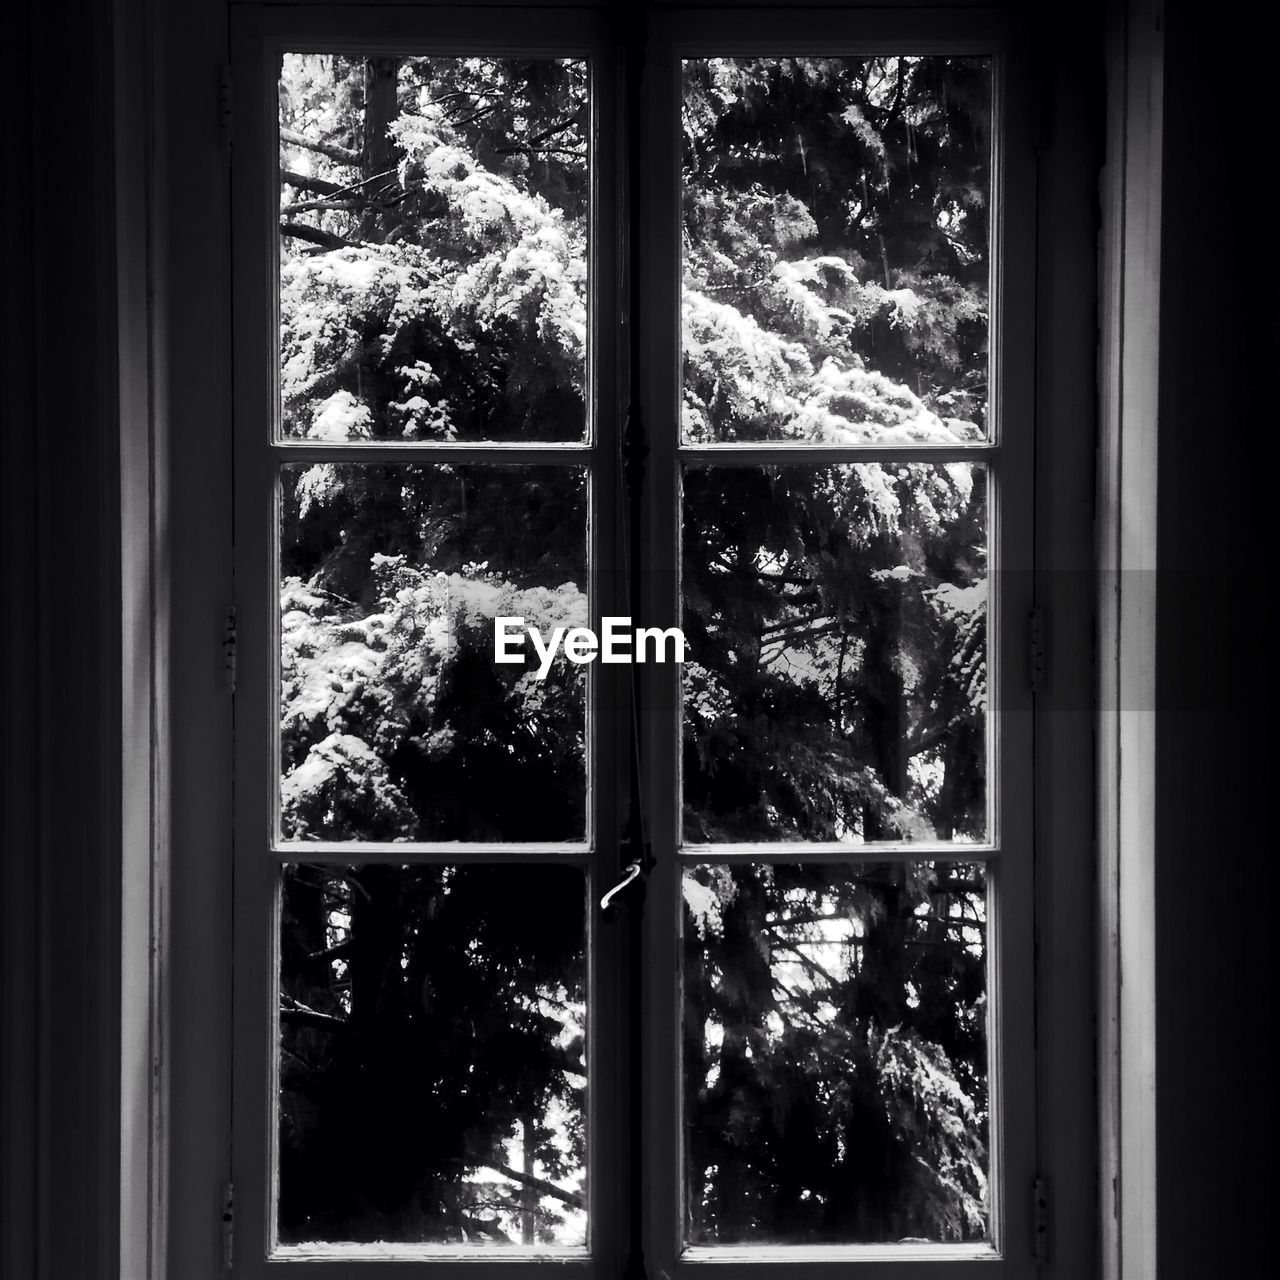 window, tree, indoors, no people, day, winter, looking through window, nature, snow, cold temperature, close-up, sky